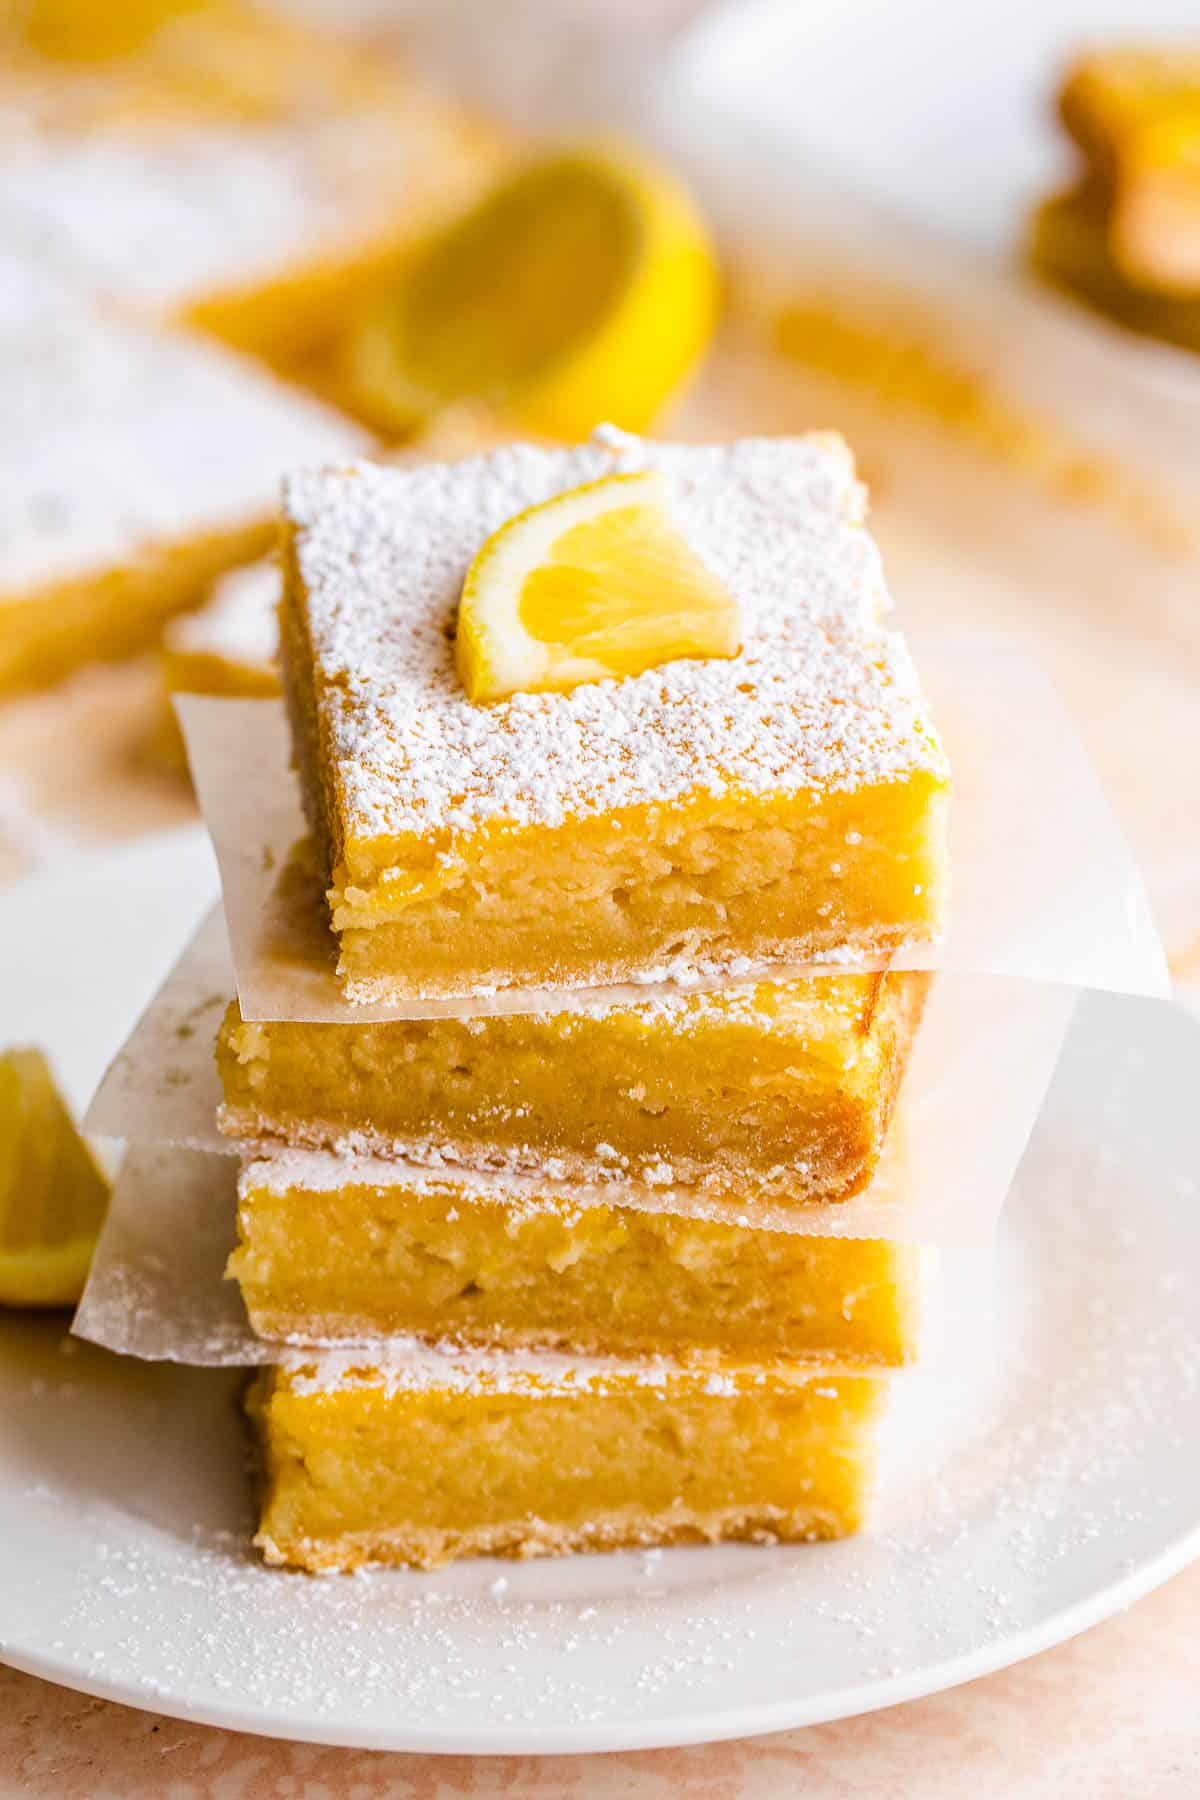 four lemon bars stacked one on top of the other and finished with a powdered sugar dusting and a lemon slice on top